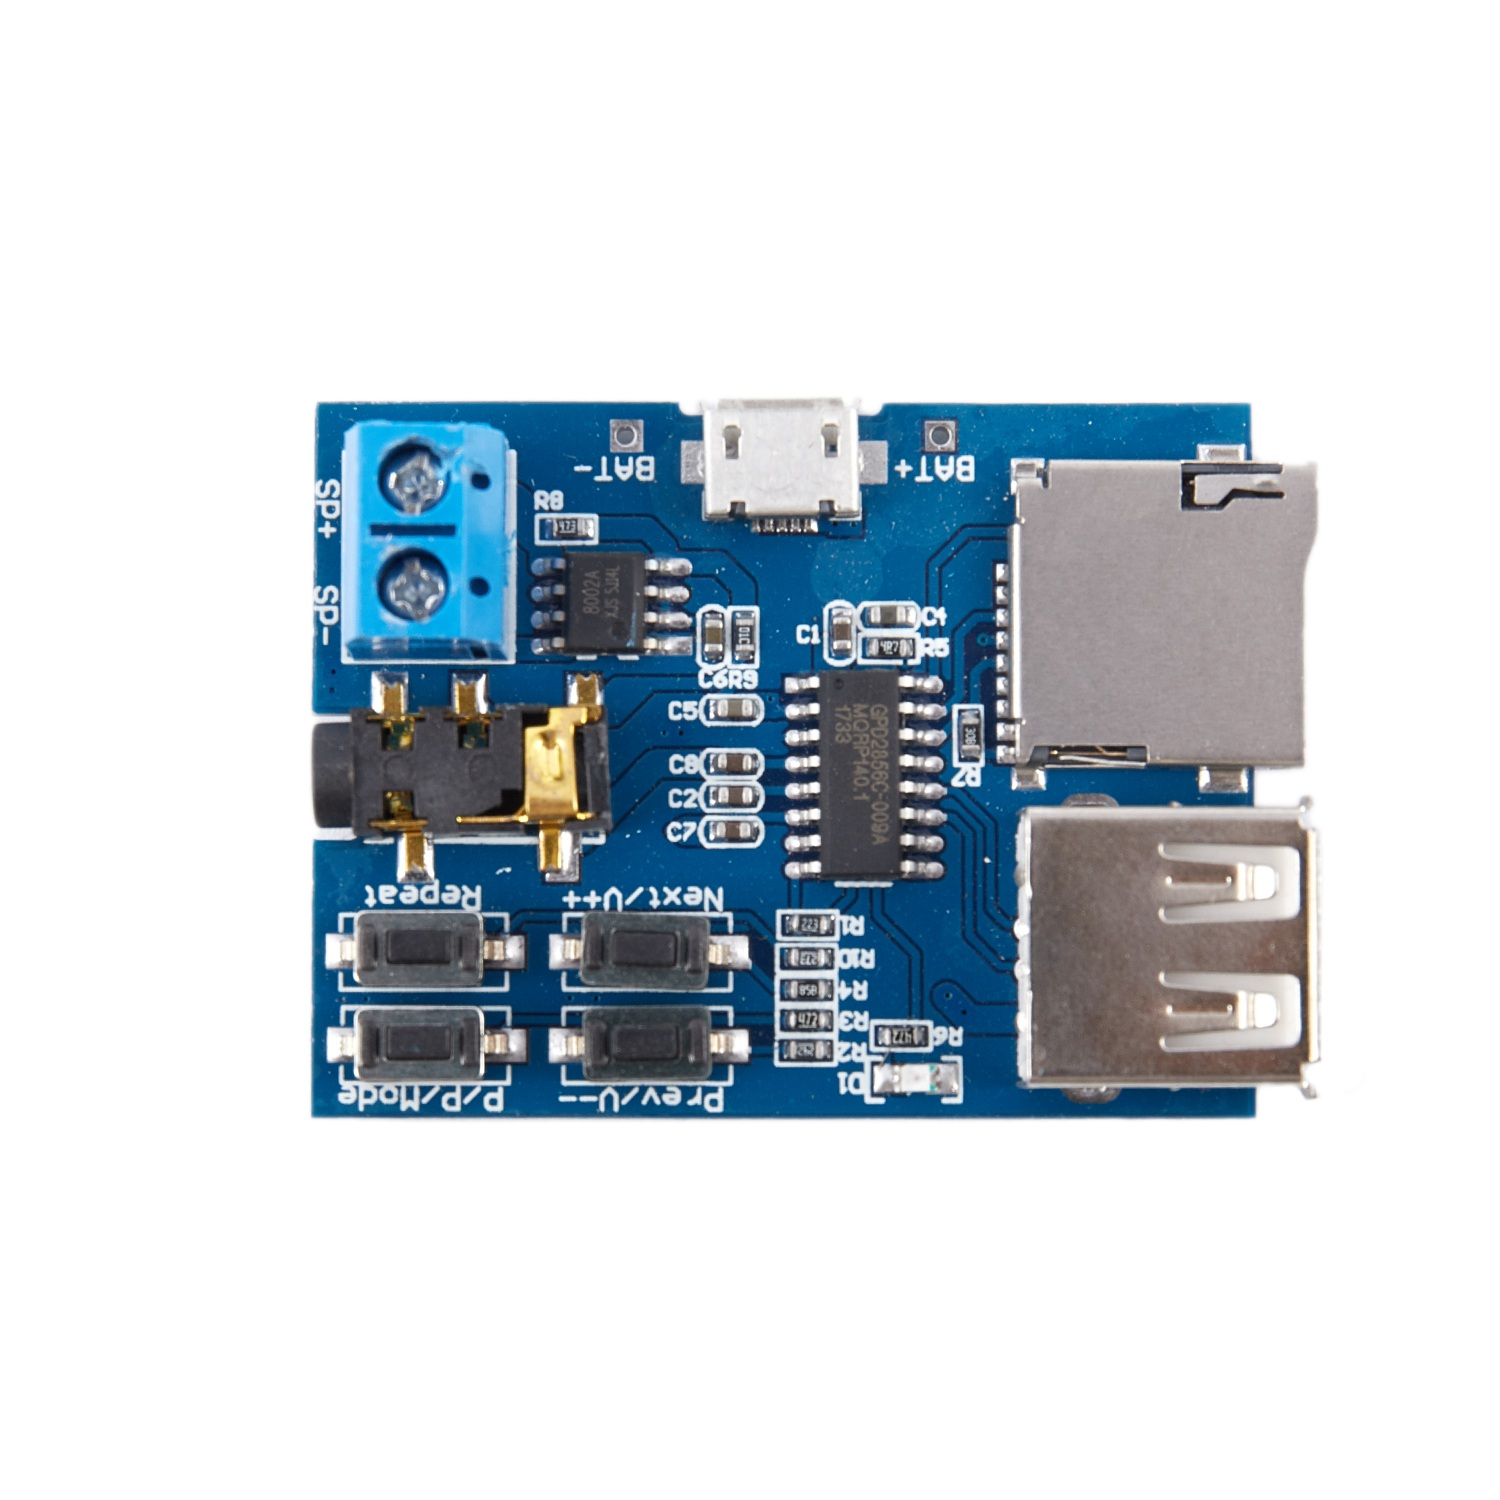 Mp3 lossless decoder board comes with amplifier mp3 decoder TF card U disk decoder player